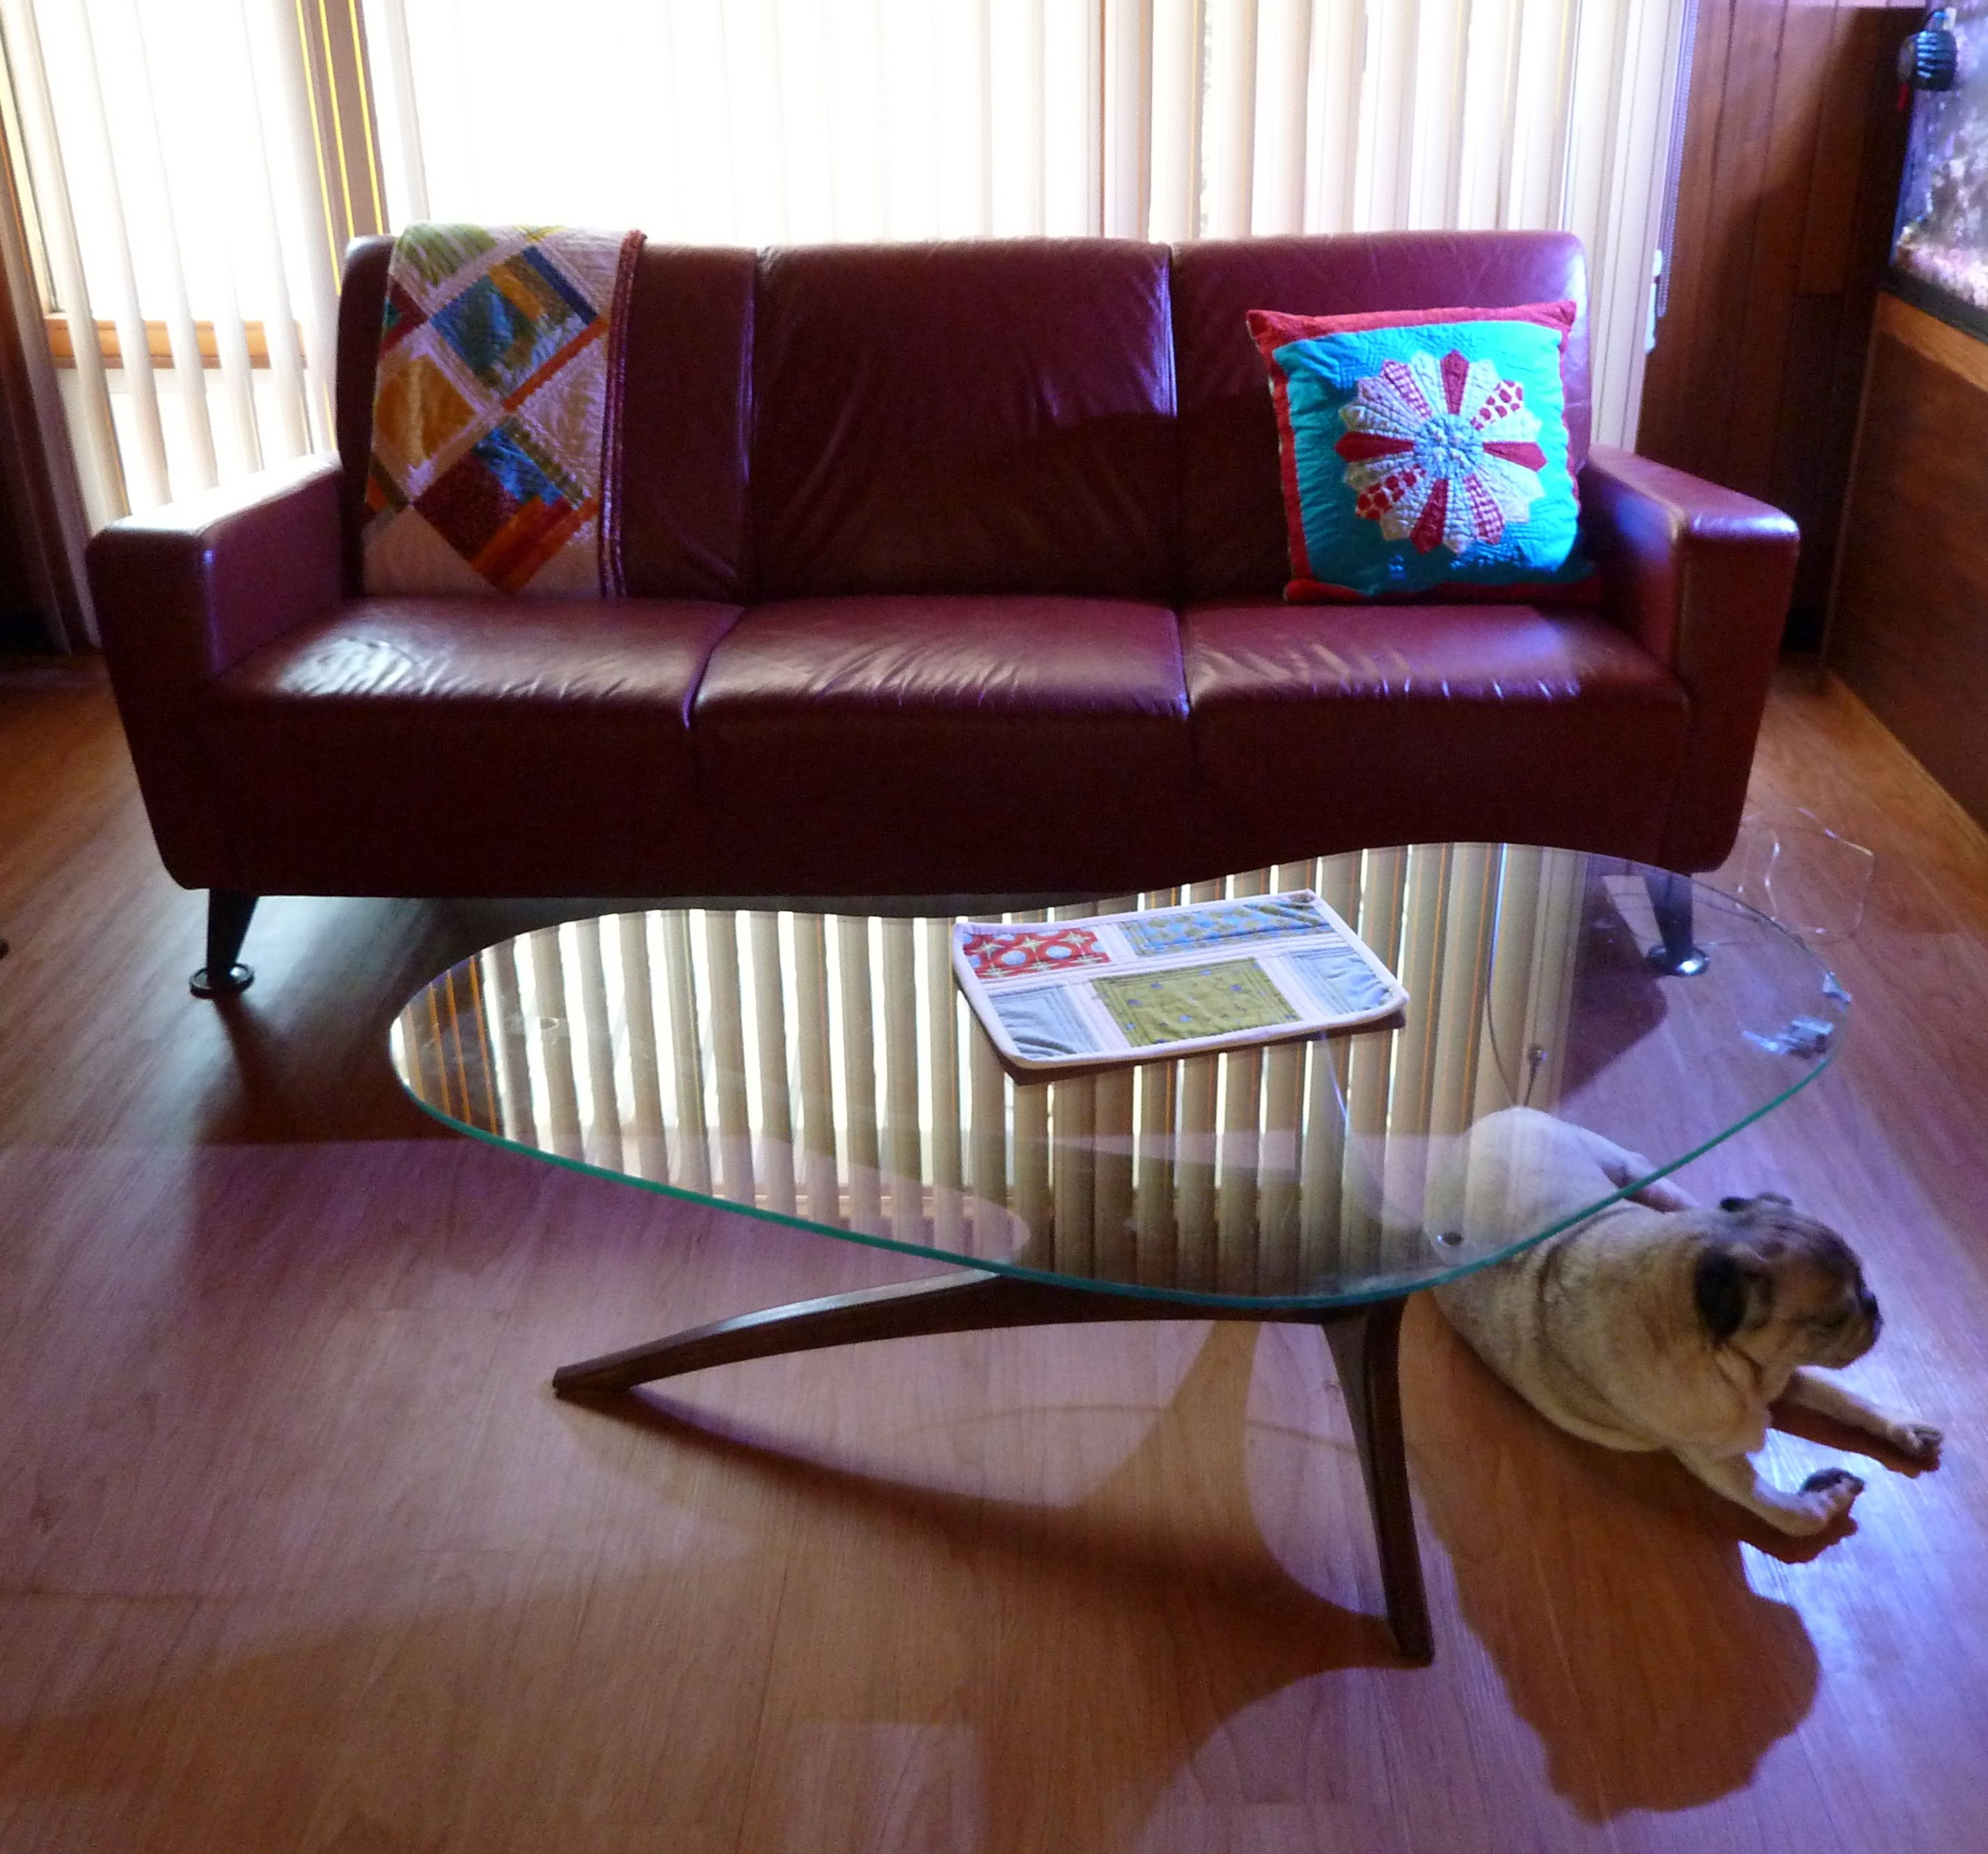 Pillows bending pins page 3 for Sofa 9 dresden